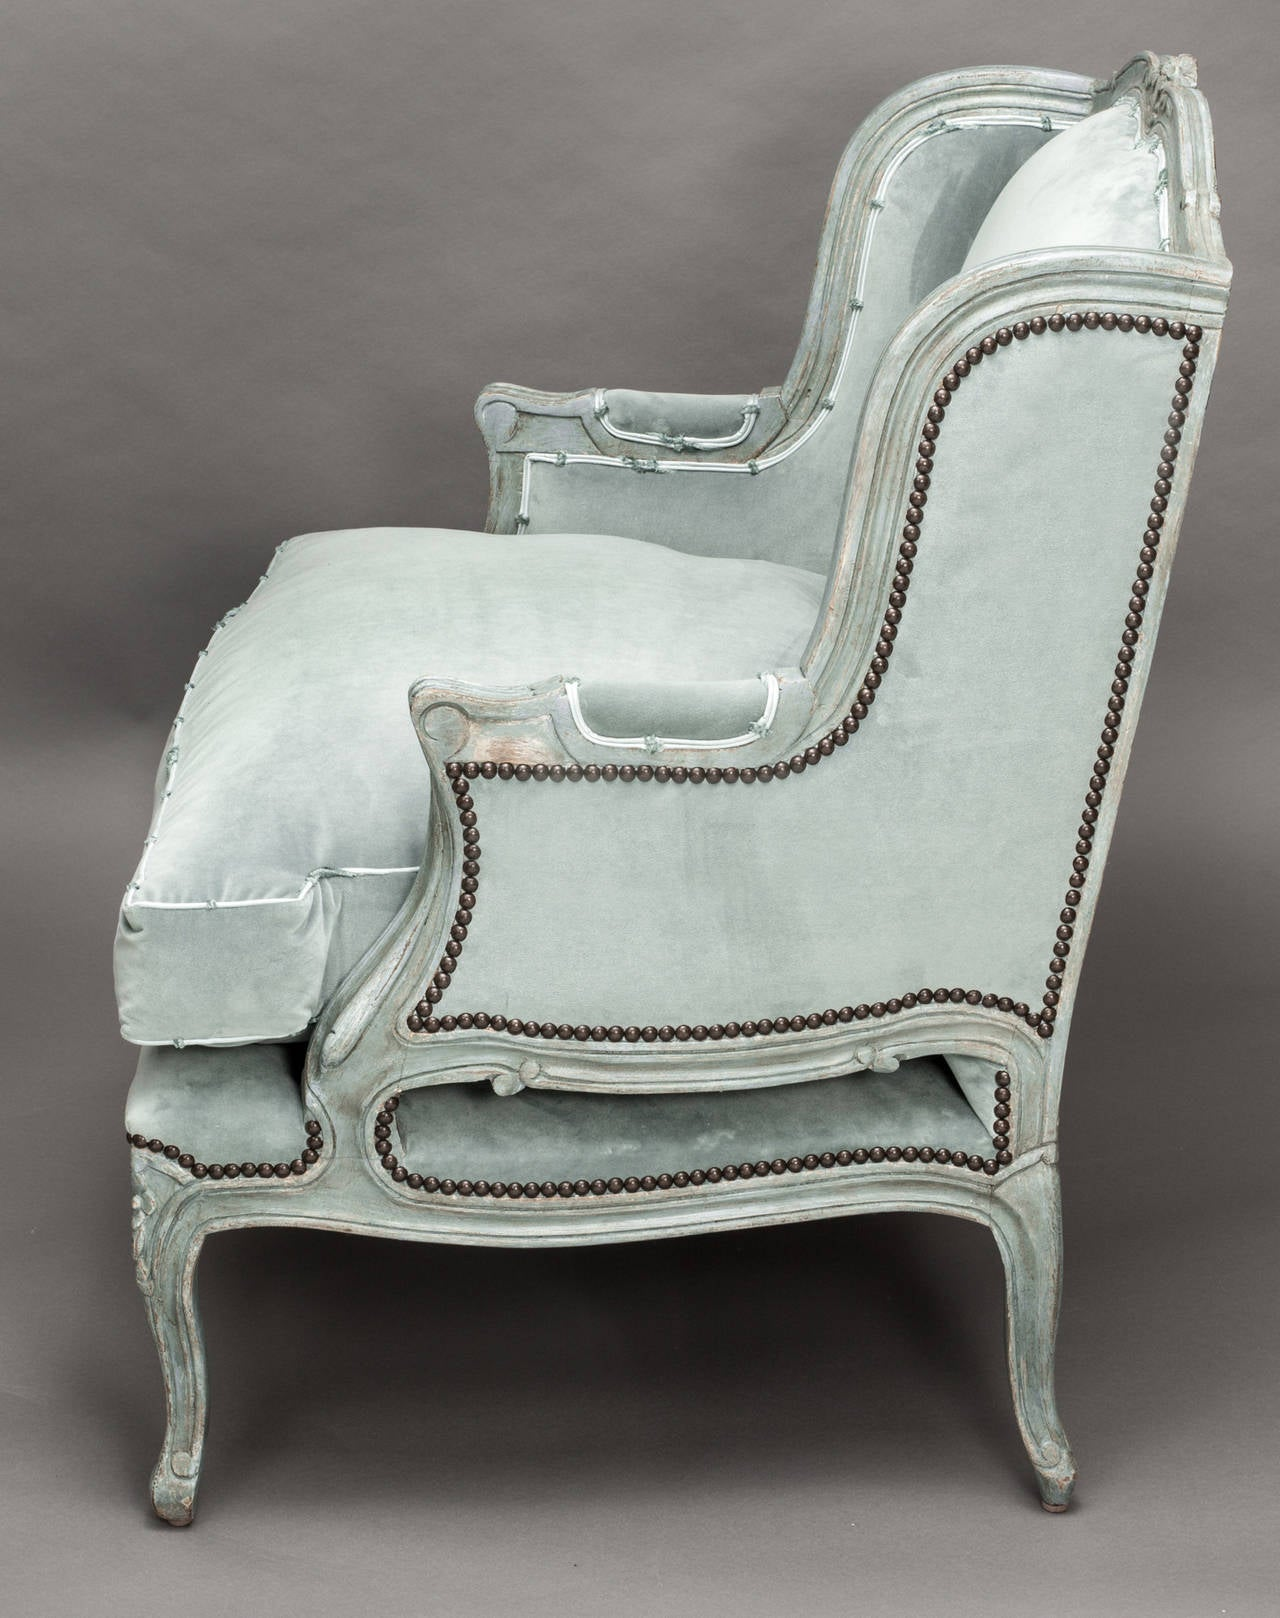 C 1880s French Painted Berg¨re Wing Back Chairs Pair at 1stdibs